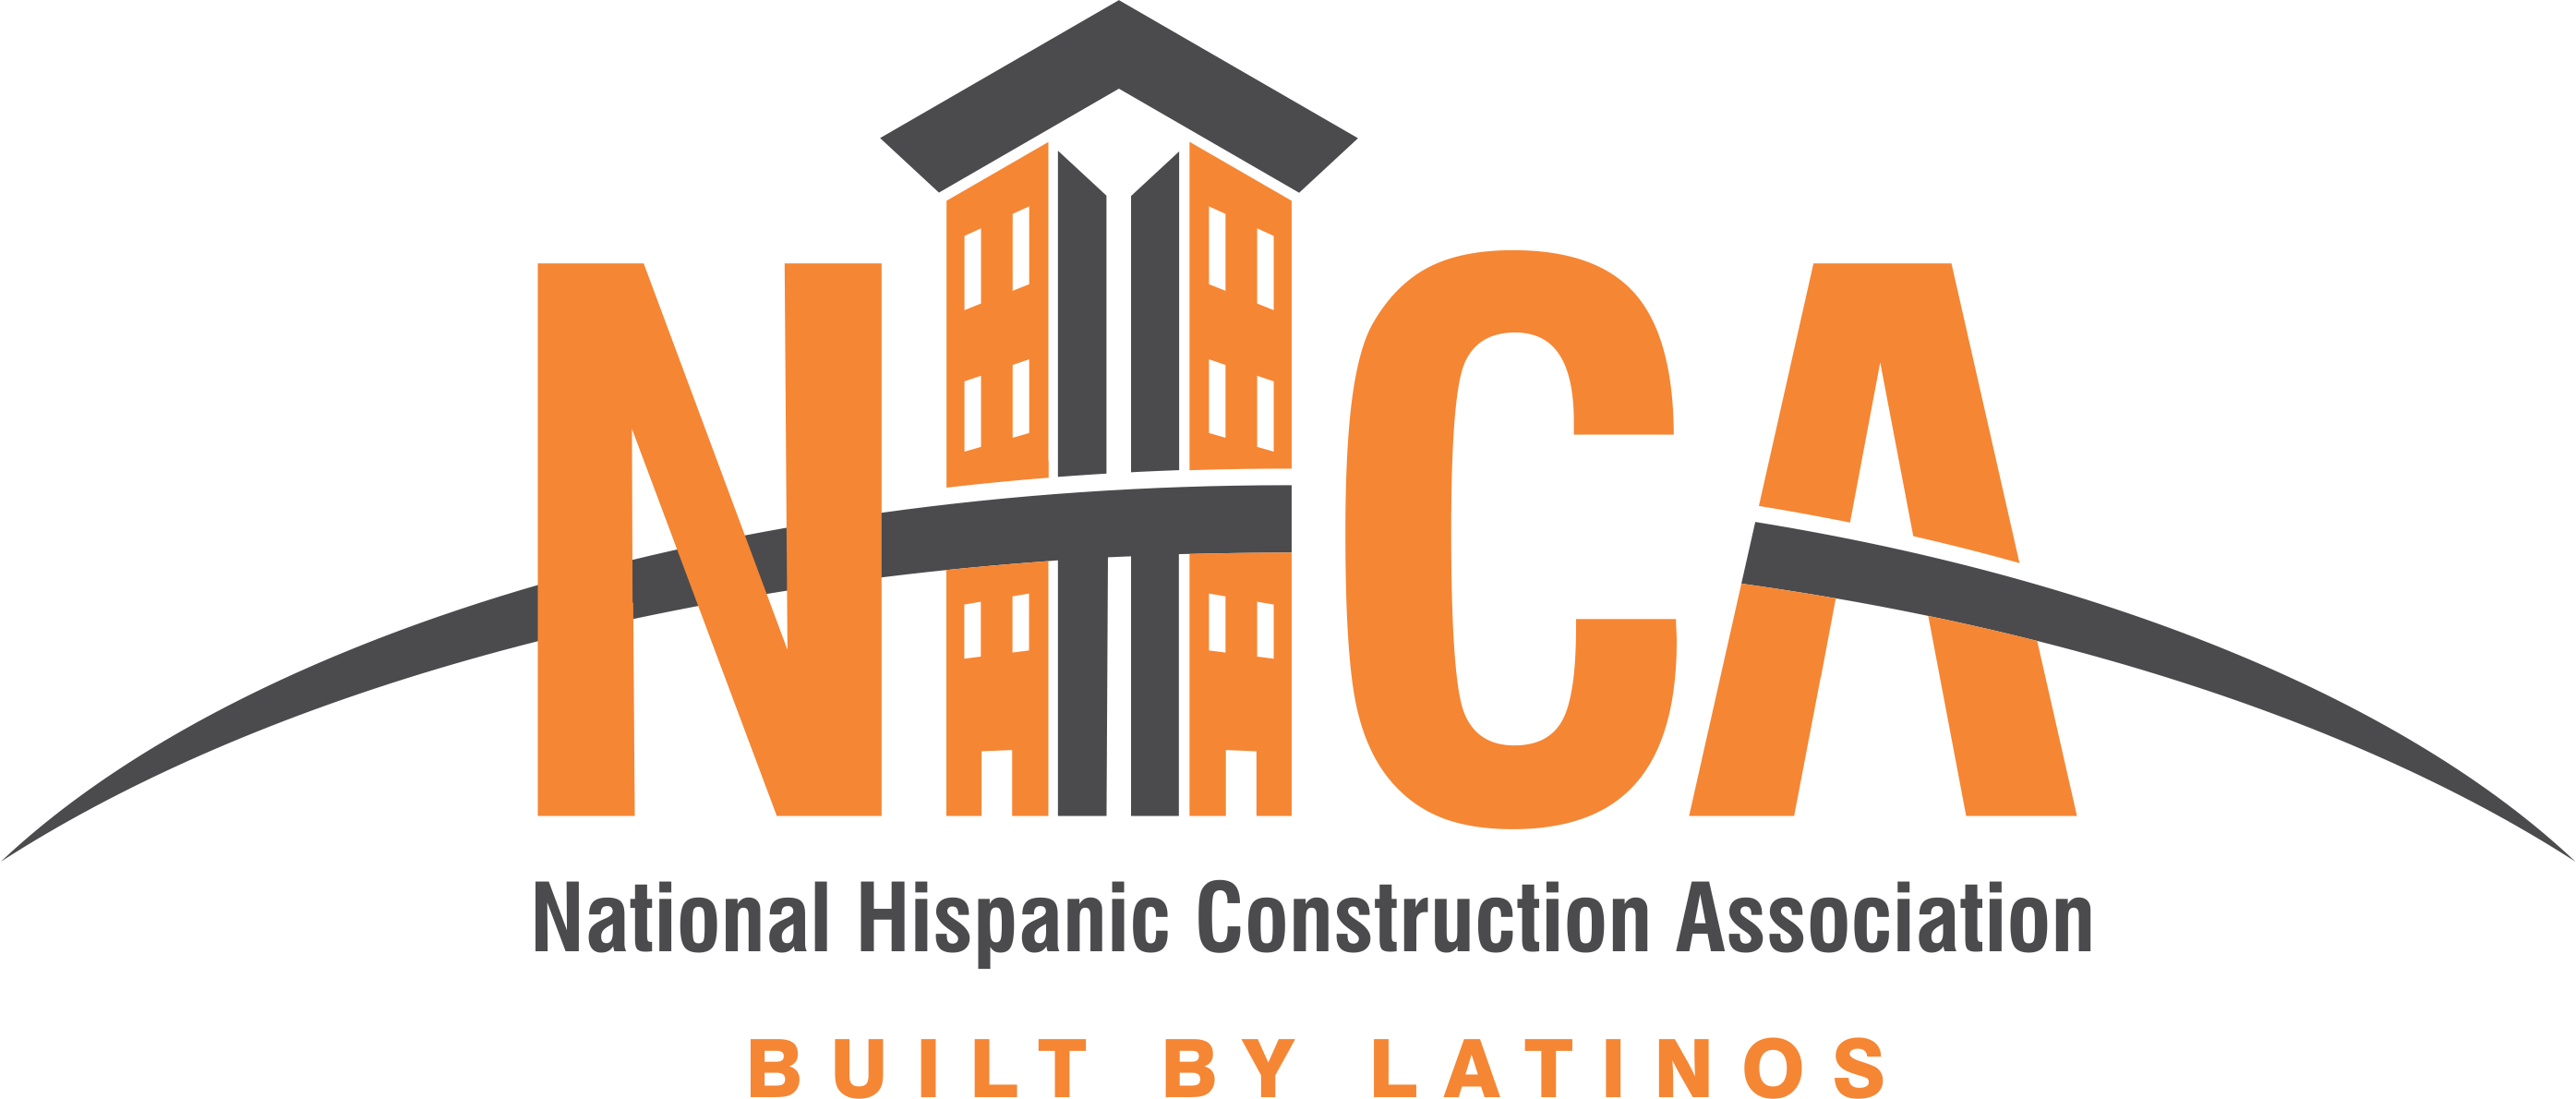 National Hispanic Construction Association - Chapters